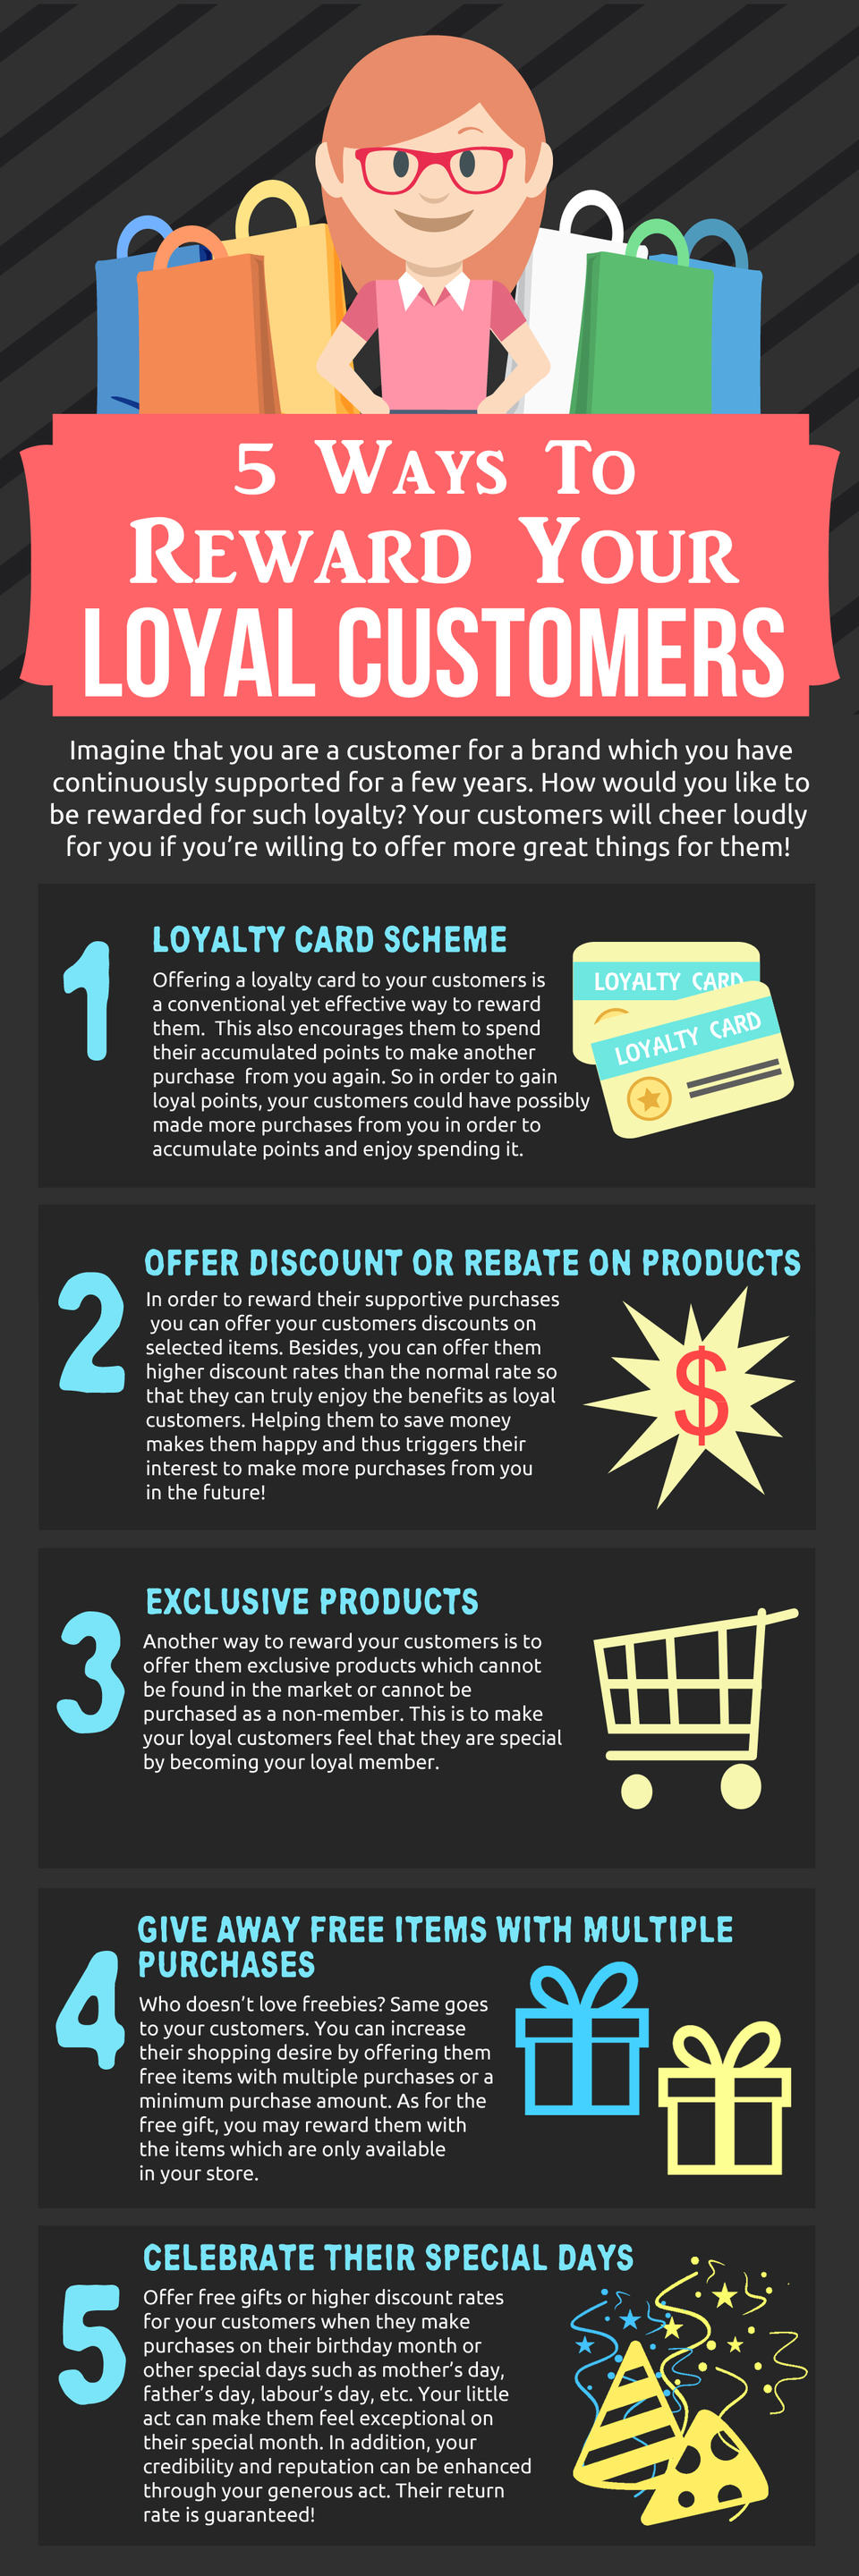 5_ways_to_reward_your_loyal_customers